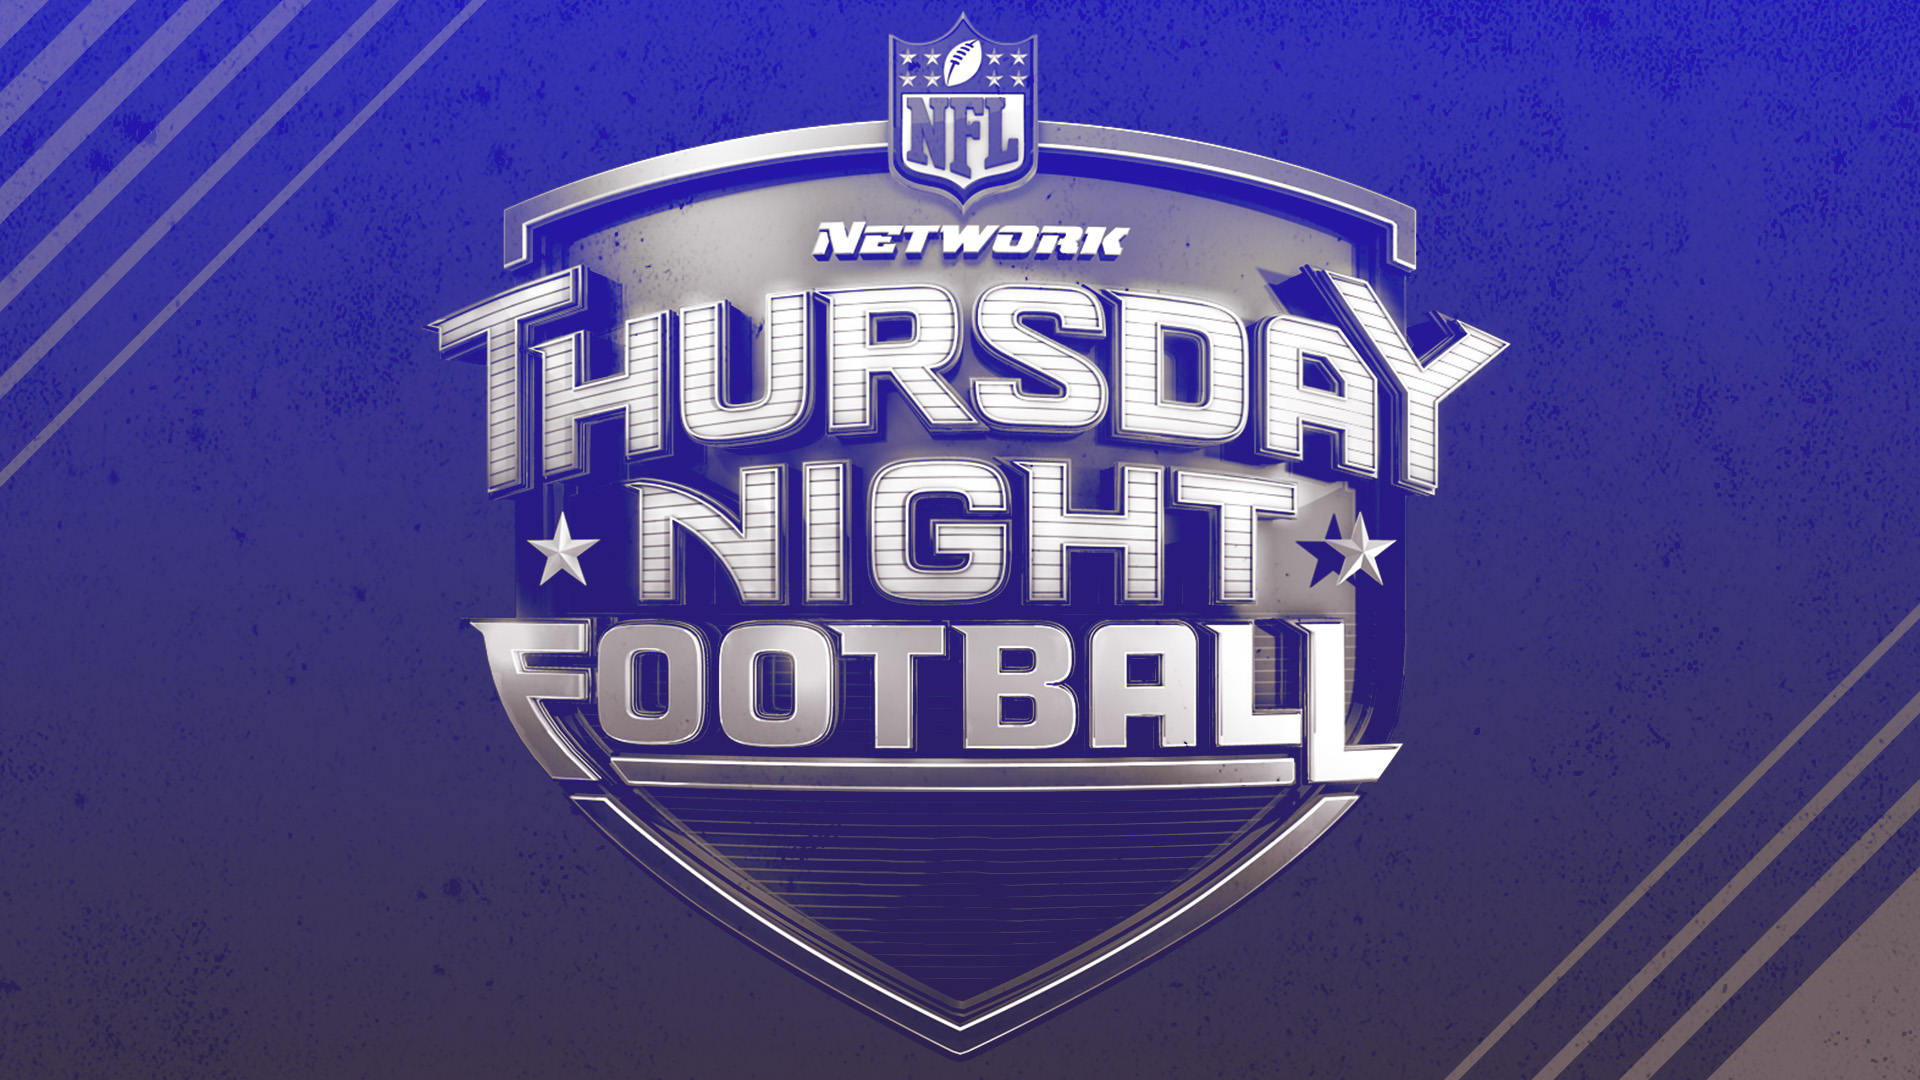 what channel is the thursday night football game on tonight